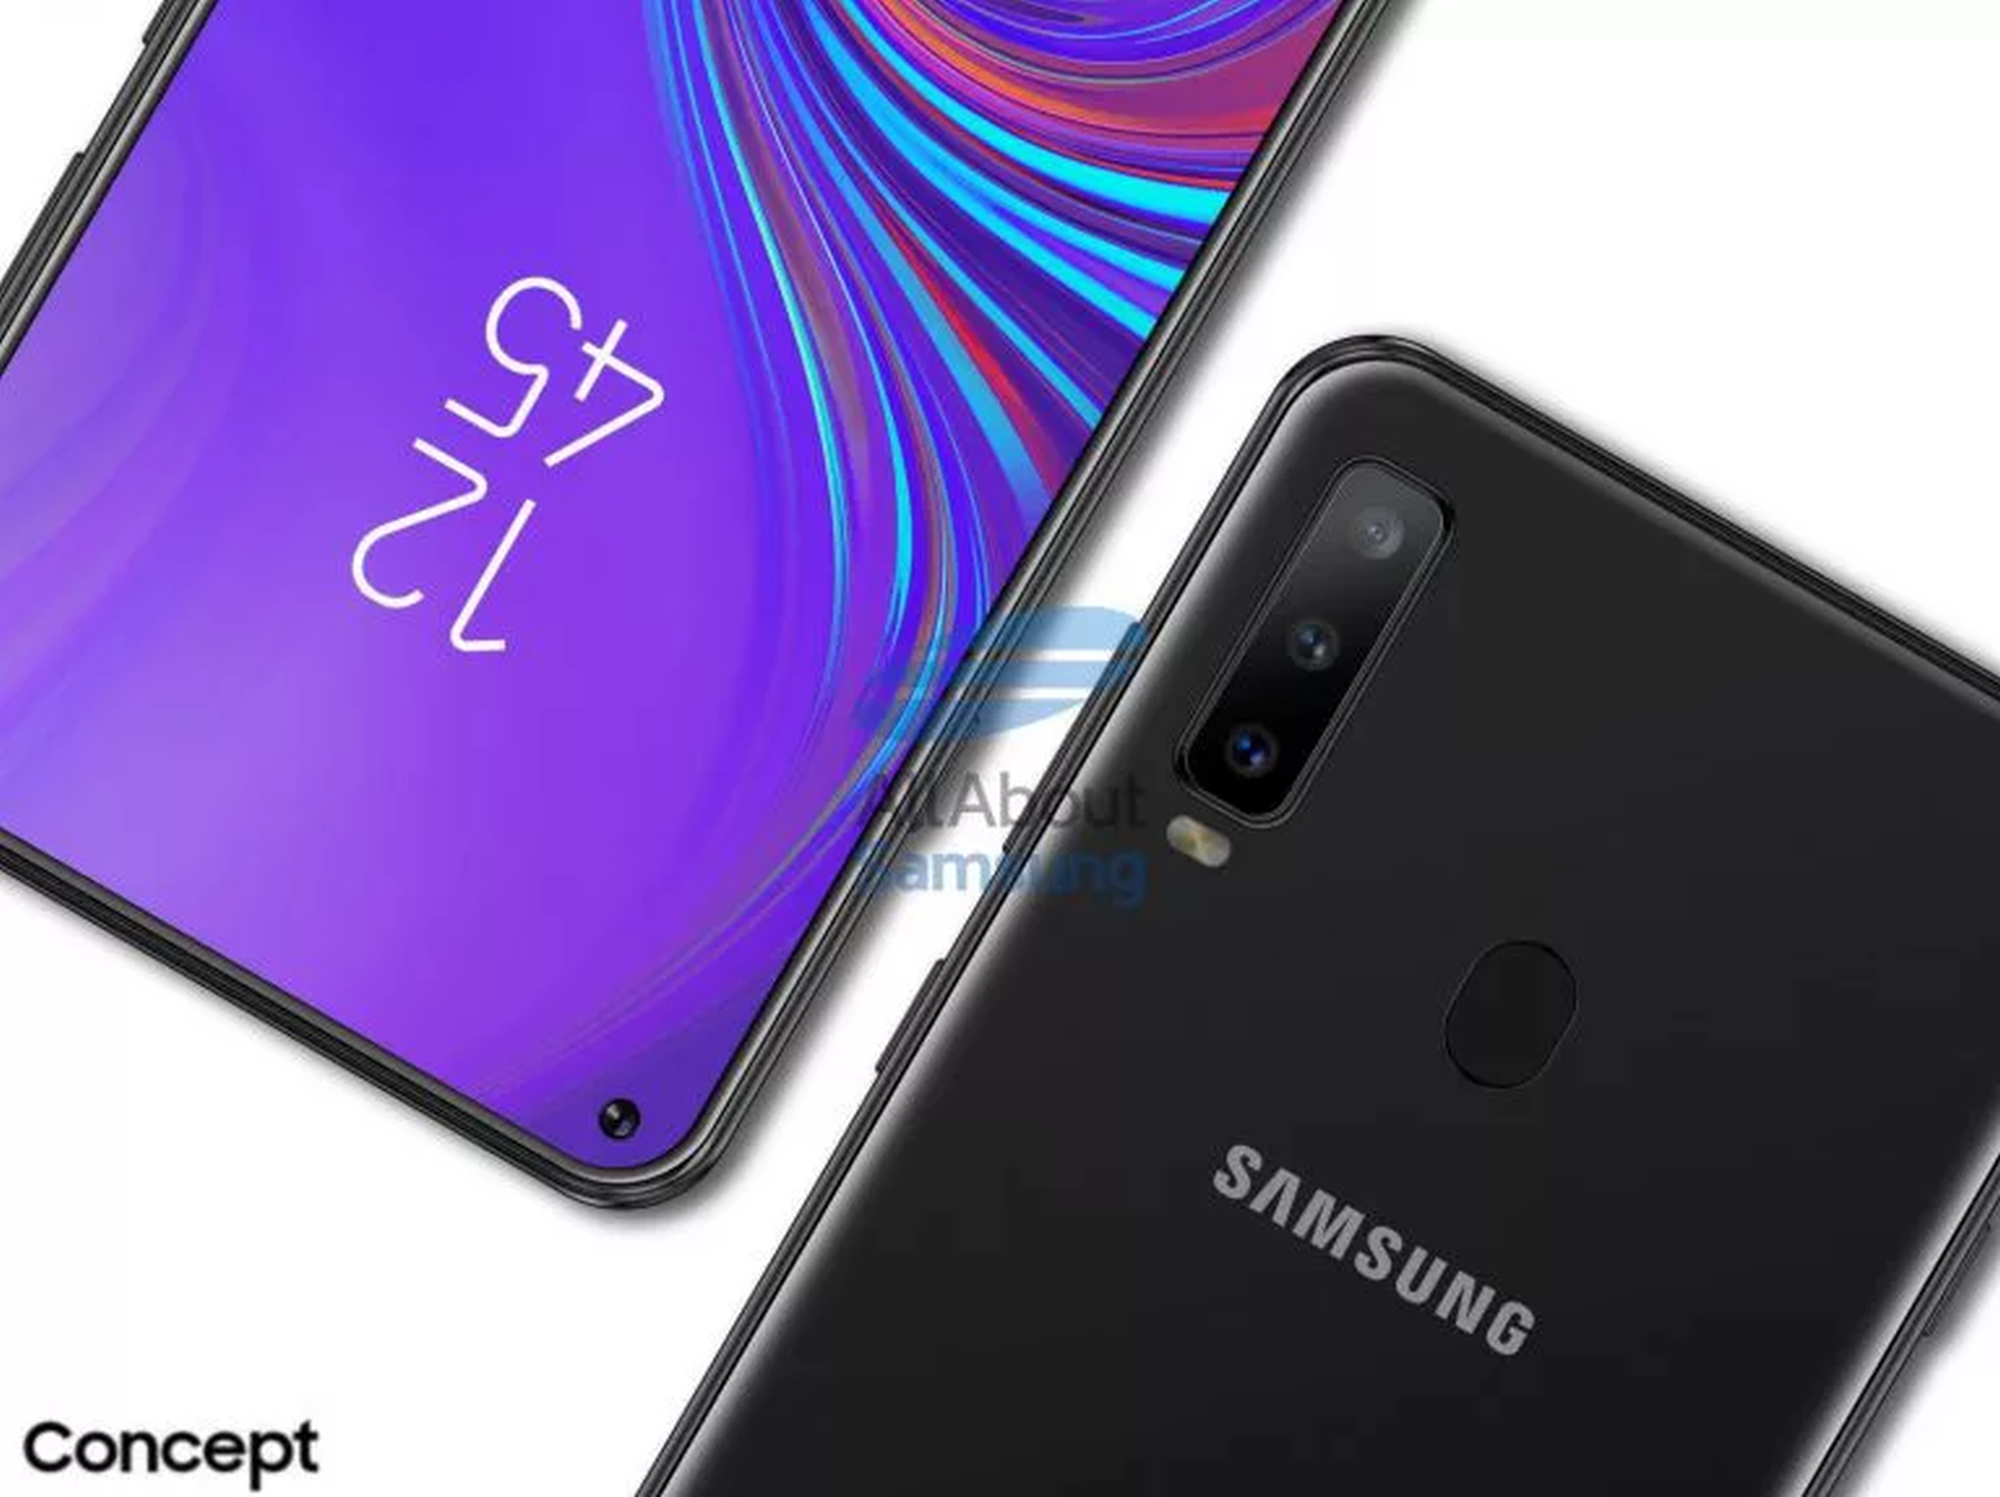 Galaxy A8s specs leaked